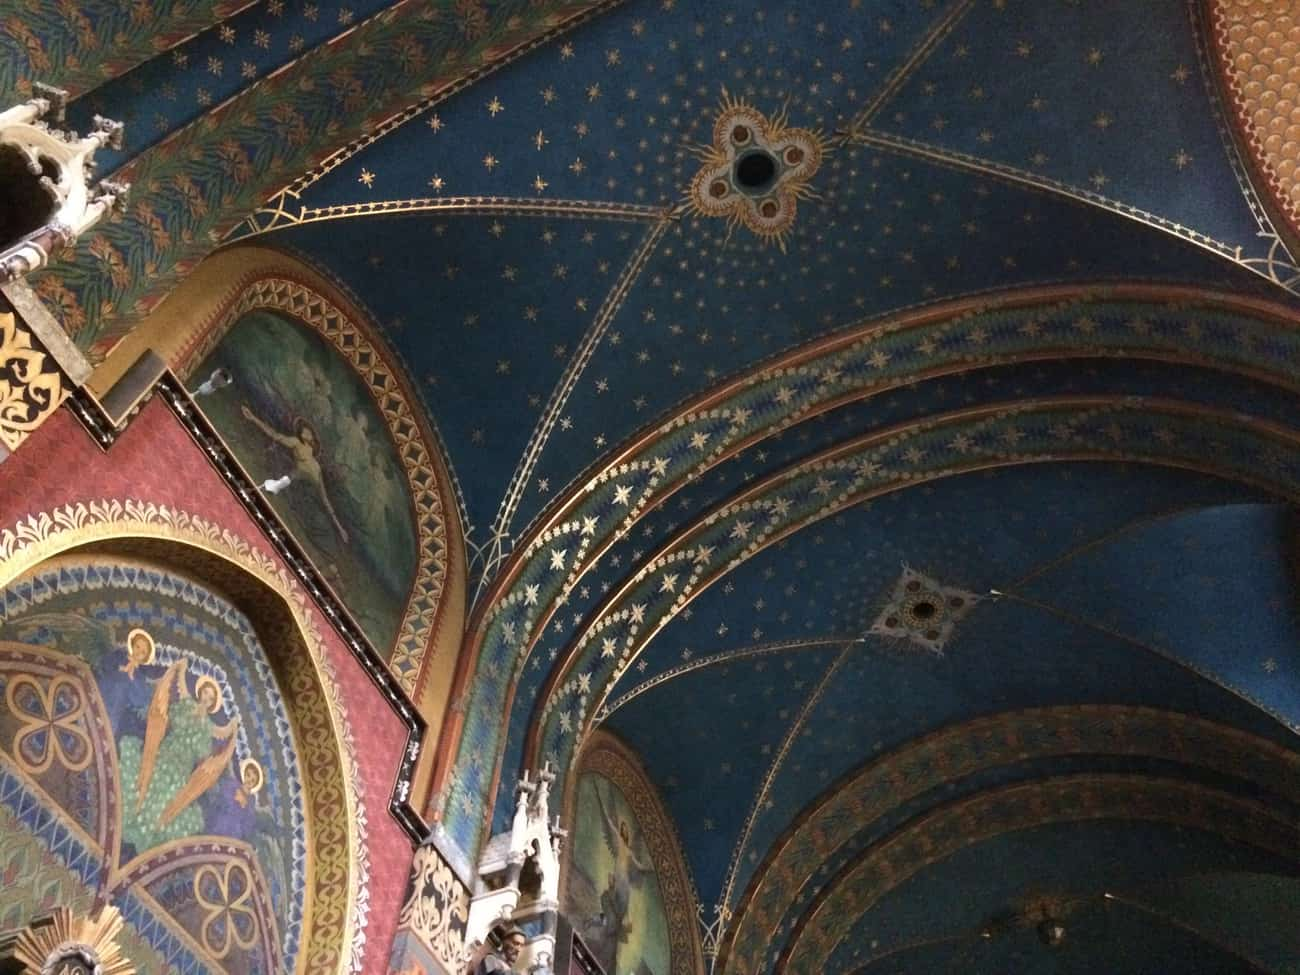 Poland Krakow Franciscan Church Interior Painted Ceiling